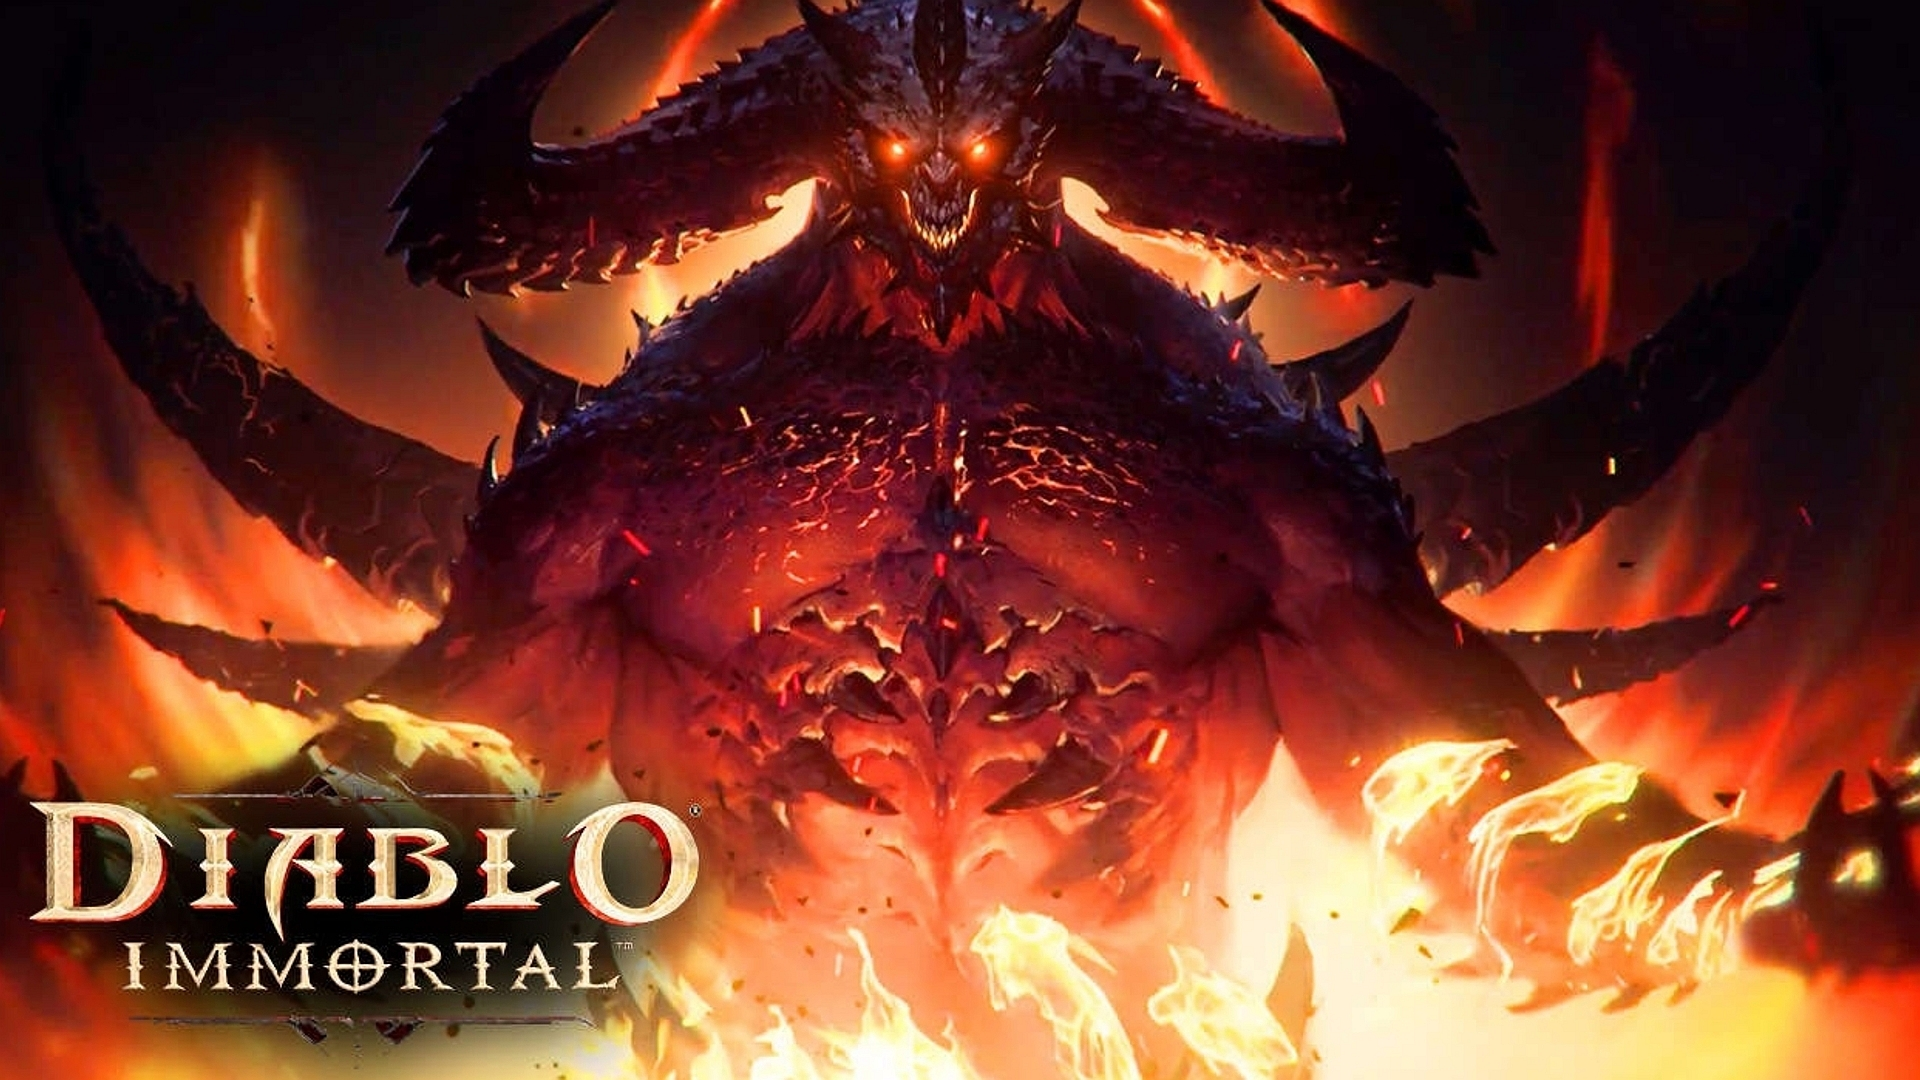 The now-infamous release of  Diablo Immortal  shocked fans, and not in a good way.